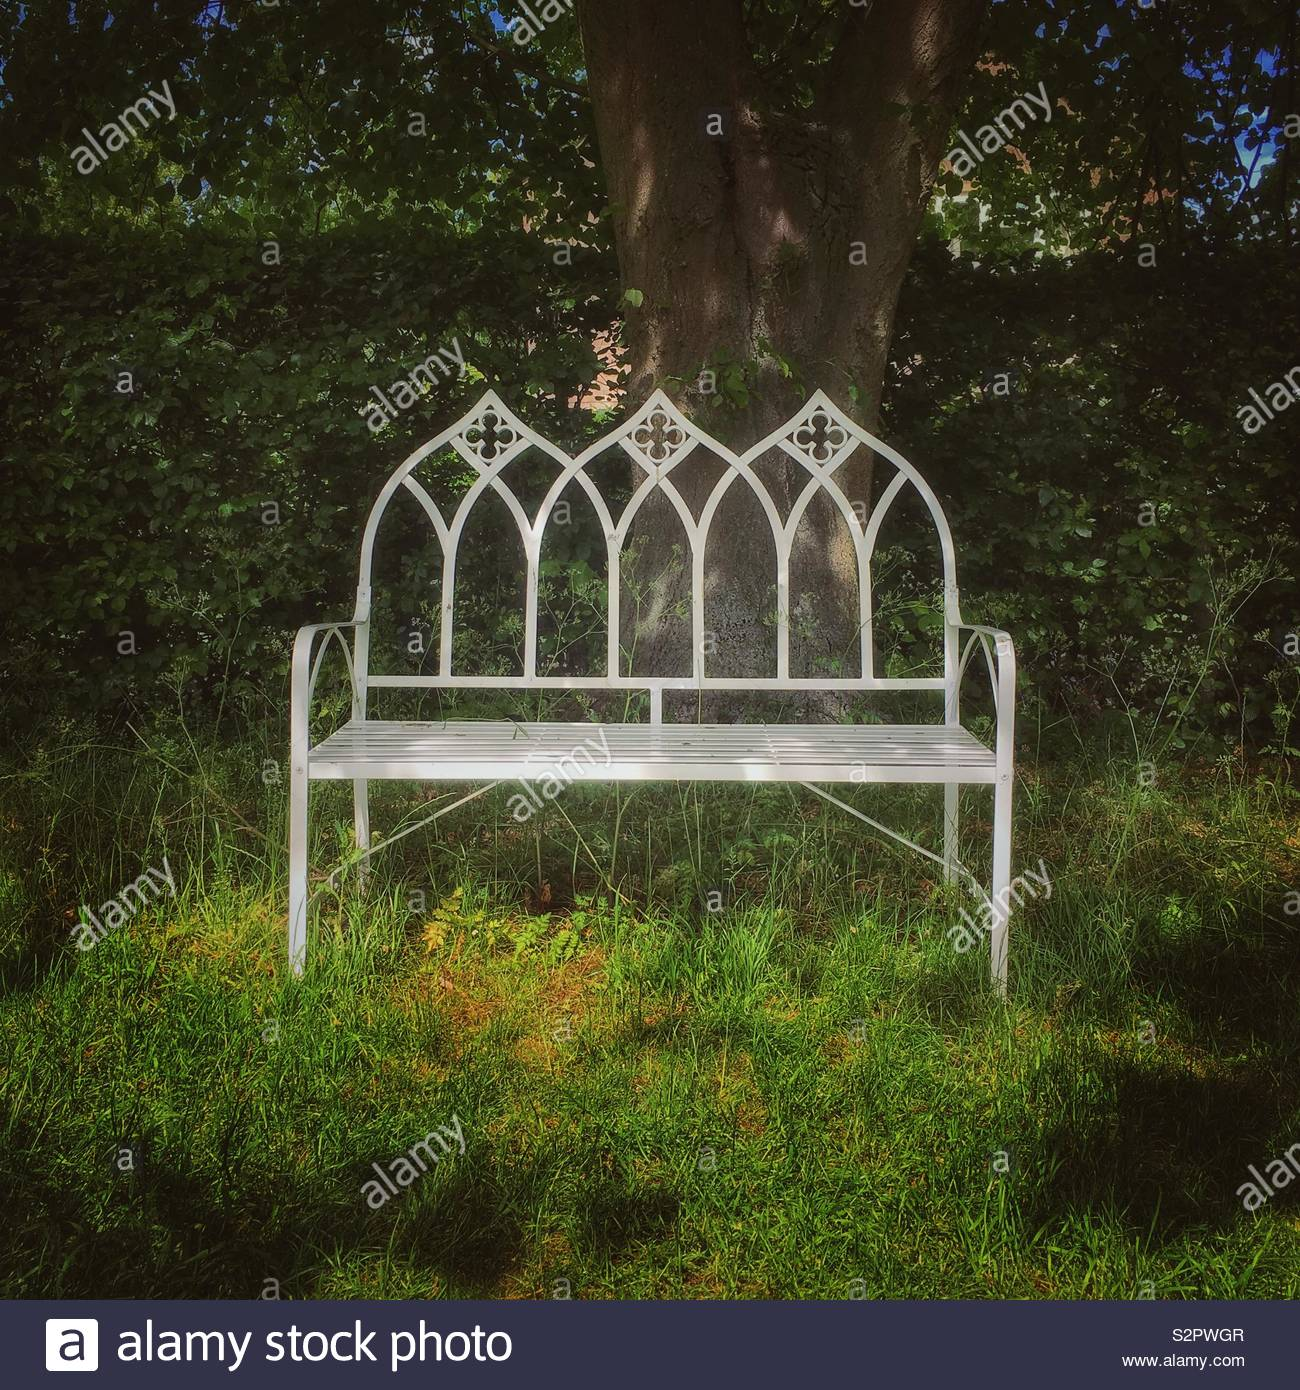 Marvelous Gothic Style White Metal Seat In An English Country Garden Gmtry Best Dining Table And Chair Ideas Images Gmtryco